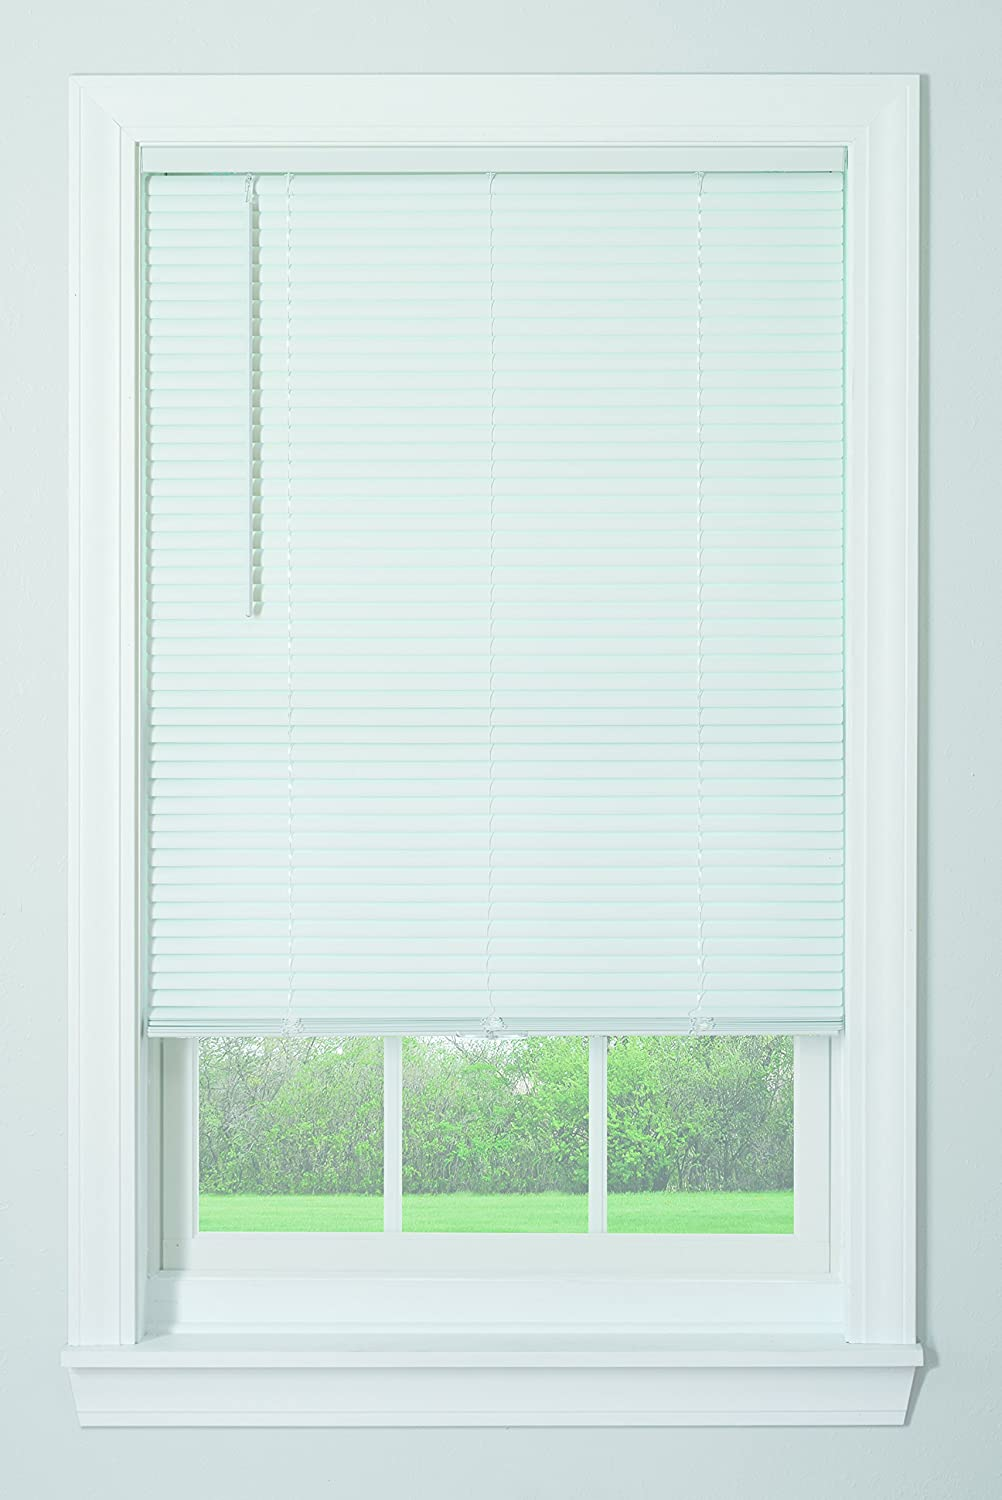 Bali Blinds 1 Cordless Vinyl White, 23x64 Springs Window Fashions 044294 187863